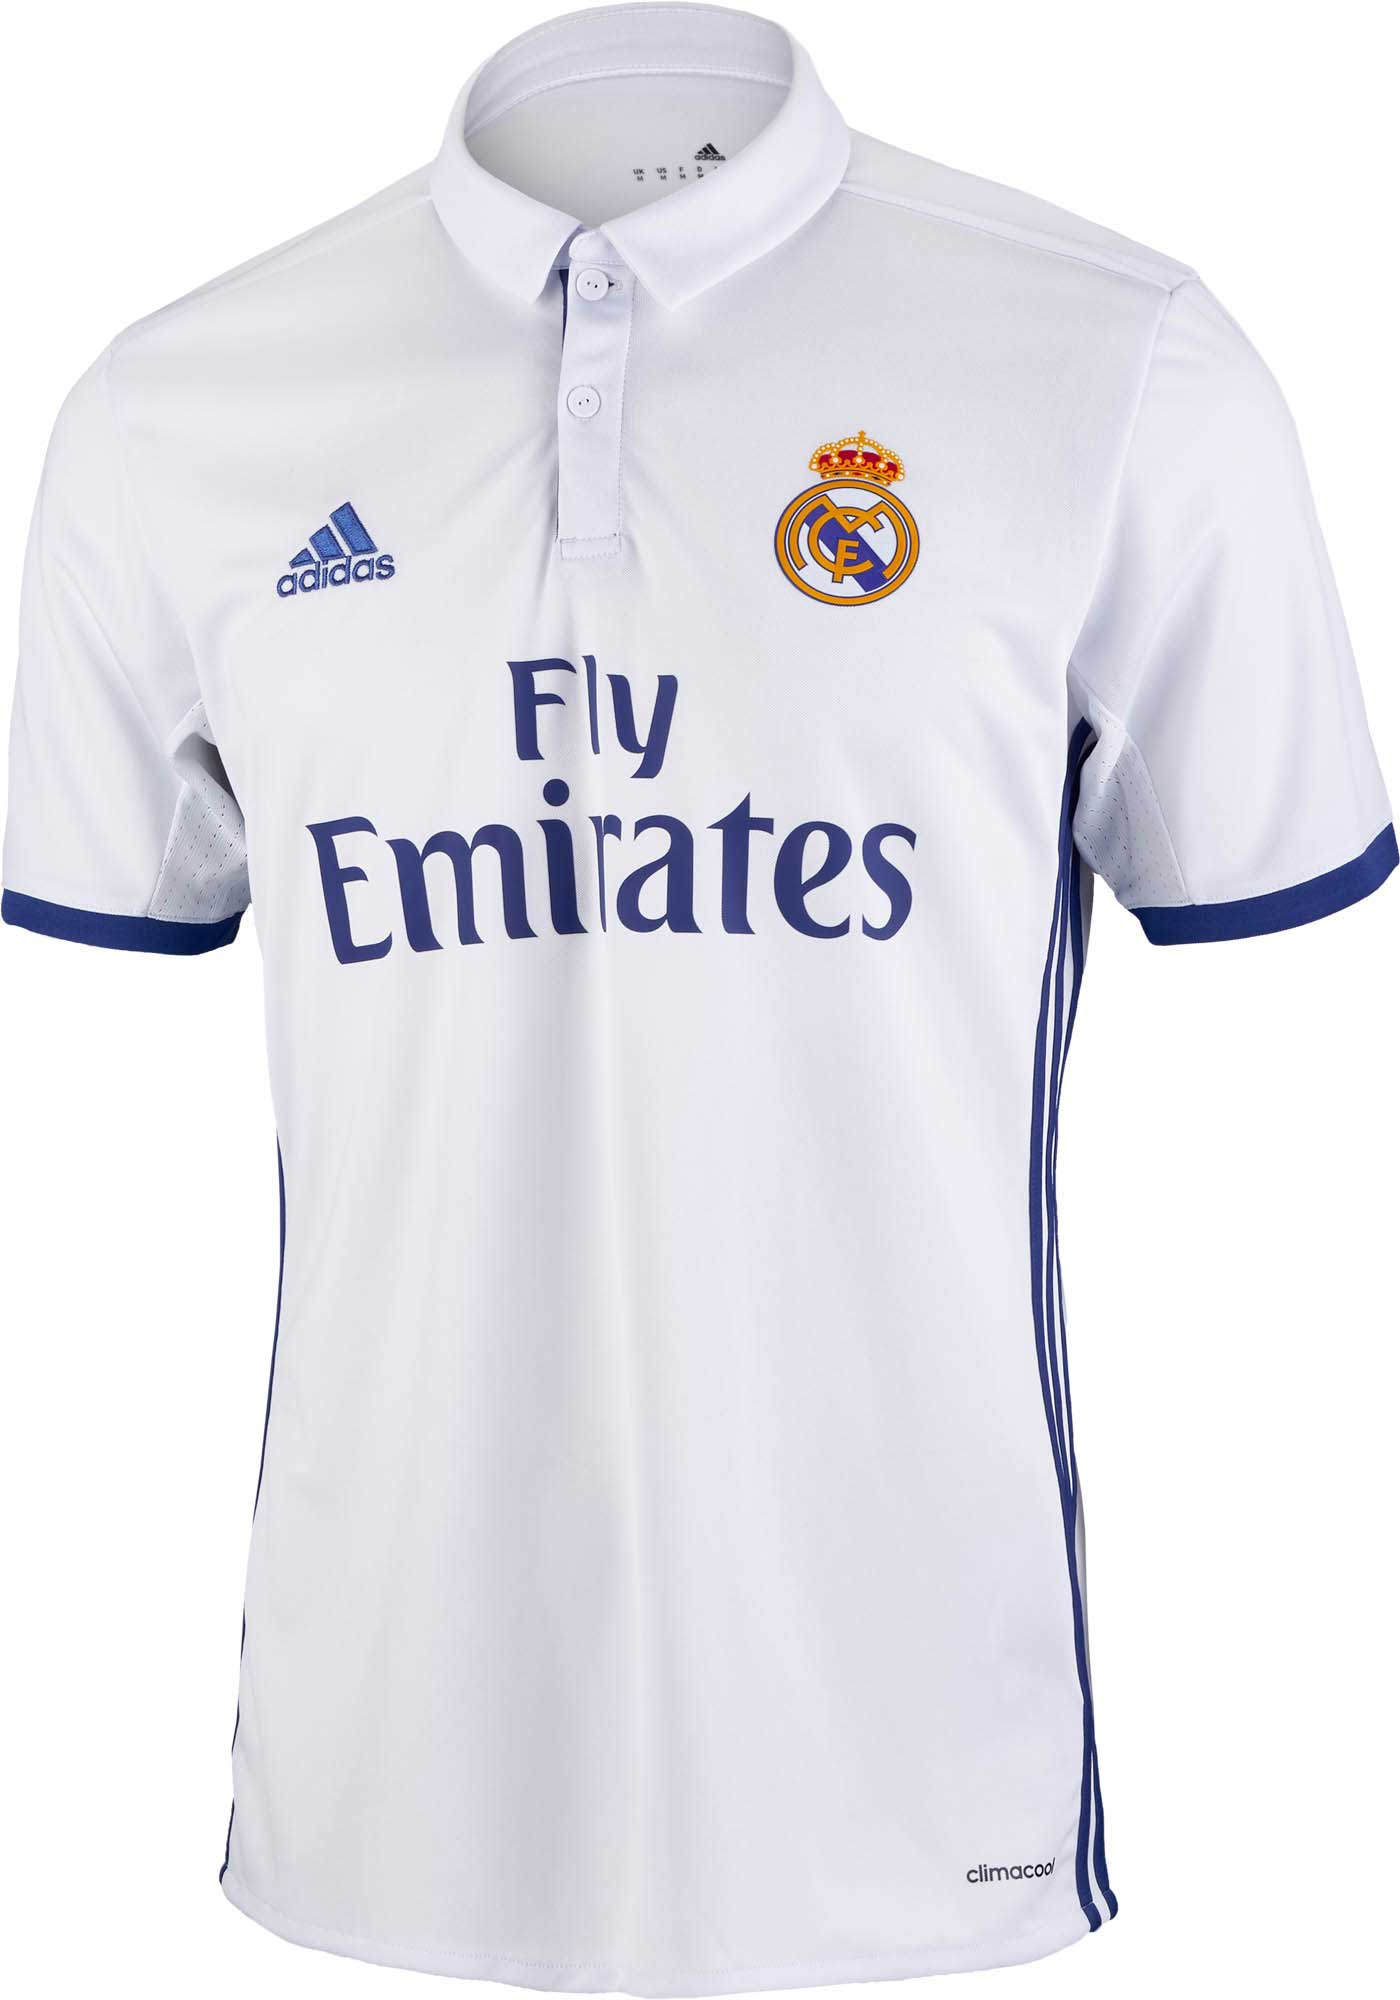 newest 47e8d 909f0 adidas Kids Real Madrid Jersey - 2016/17 Real Madrid Home ...